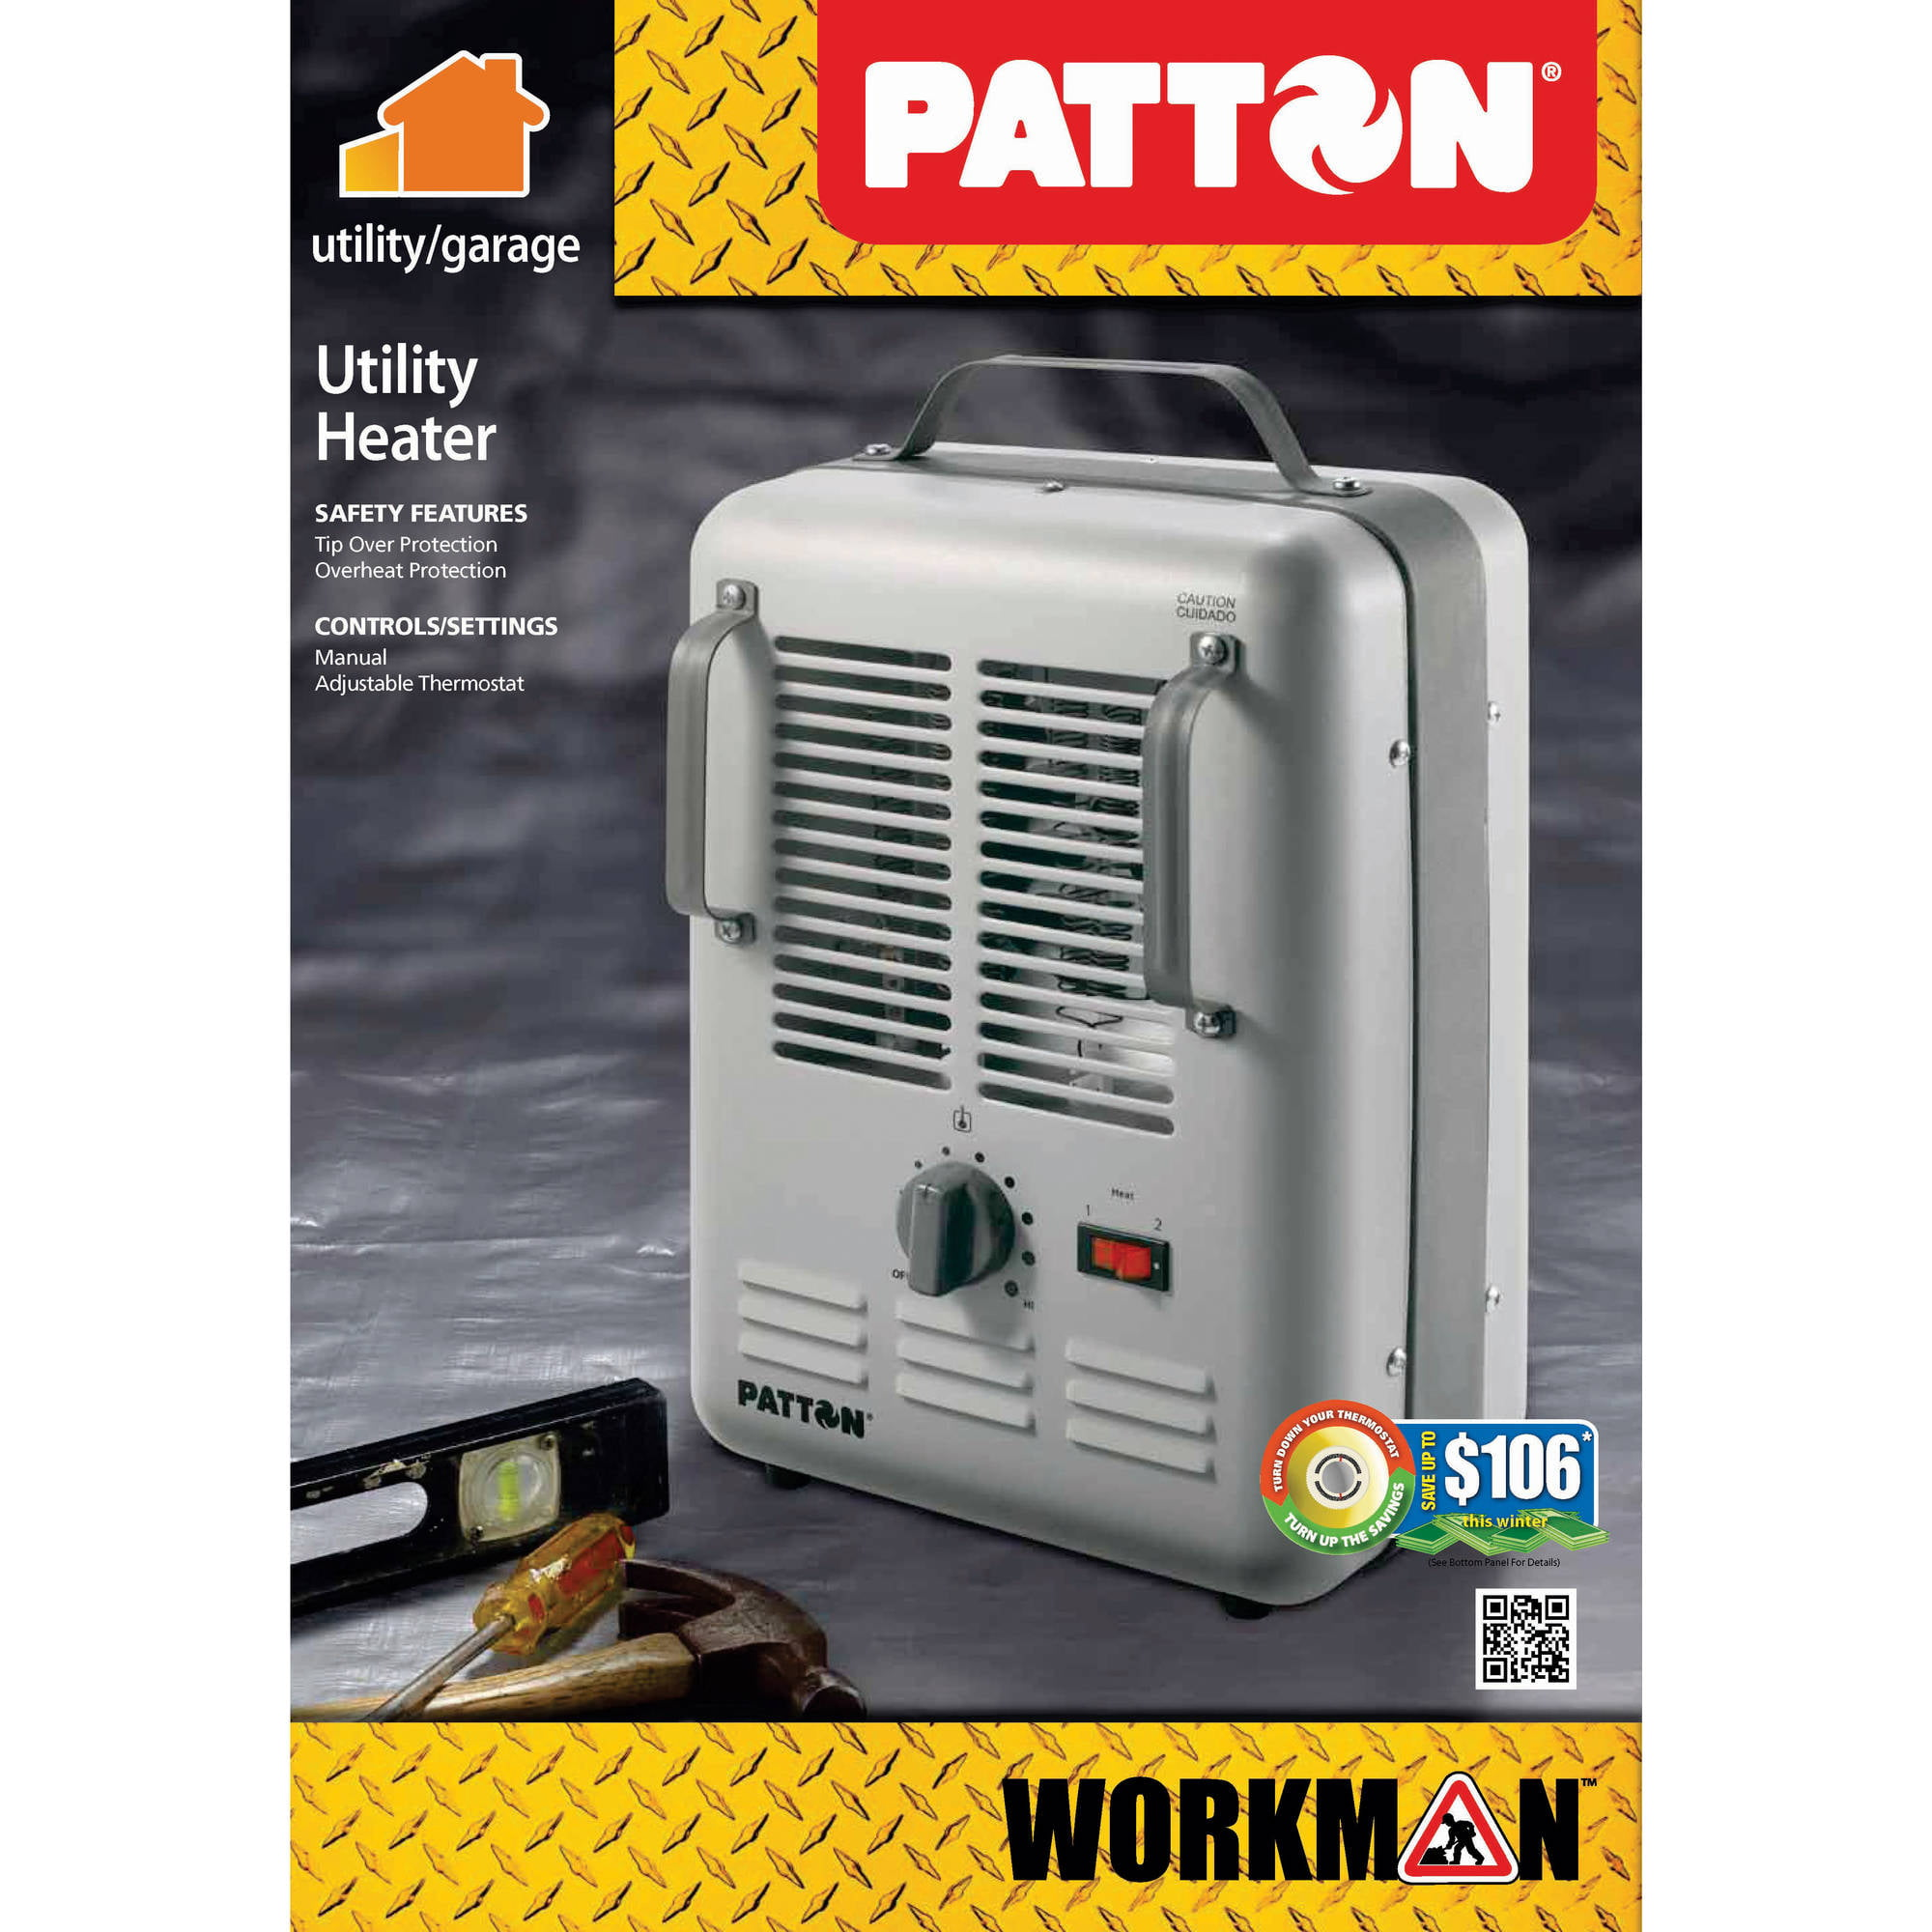 f690ea58 401f 4482 bf8b 7bcda8d1fee3_1.f5a08217a16dec6c3500fb3c2f3840e6 patton electric utility milkhouse heater walmart com Patton Heater Recall at crackthecode.co